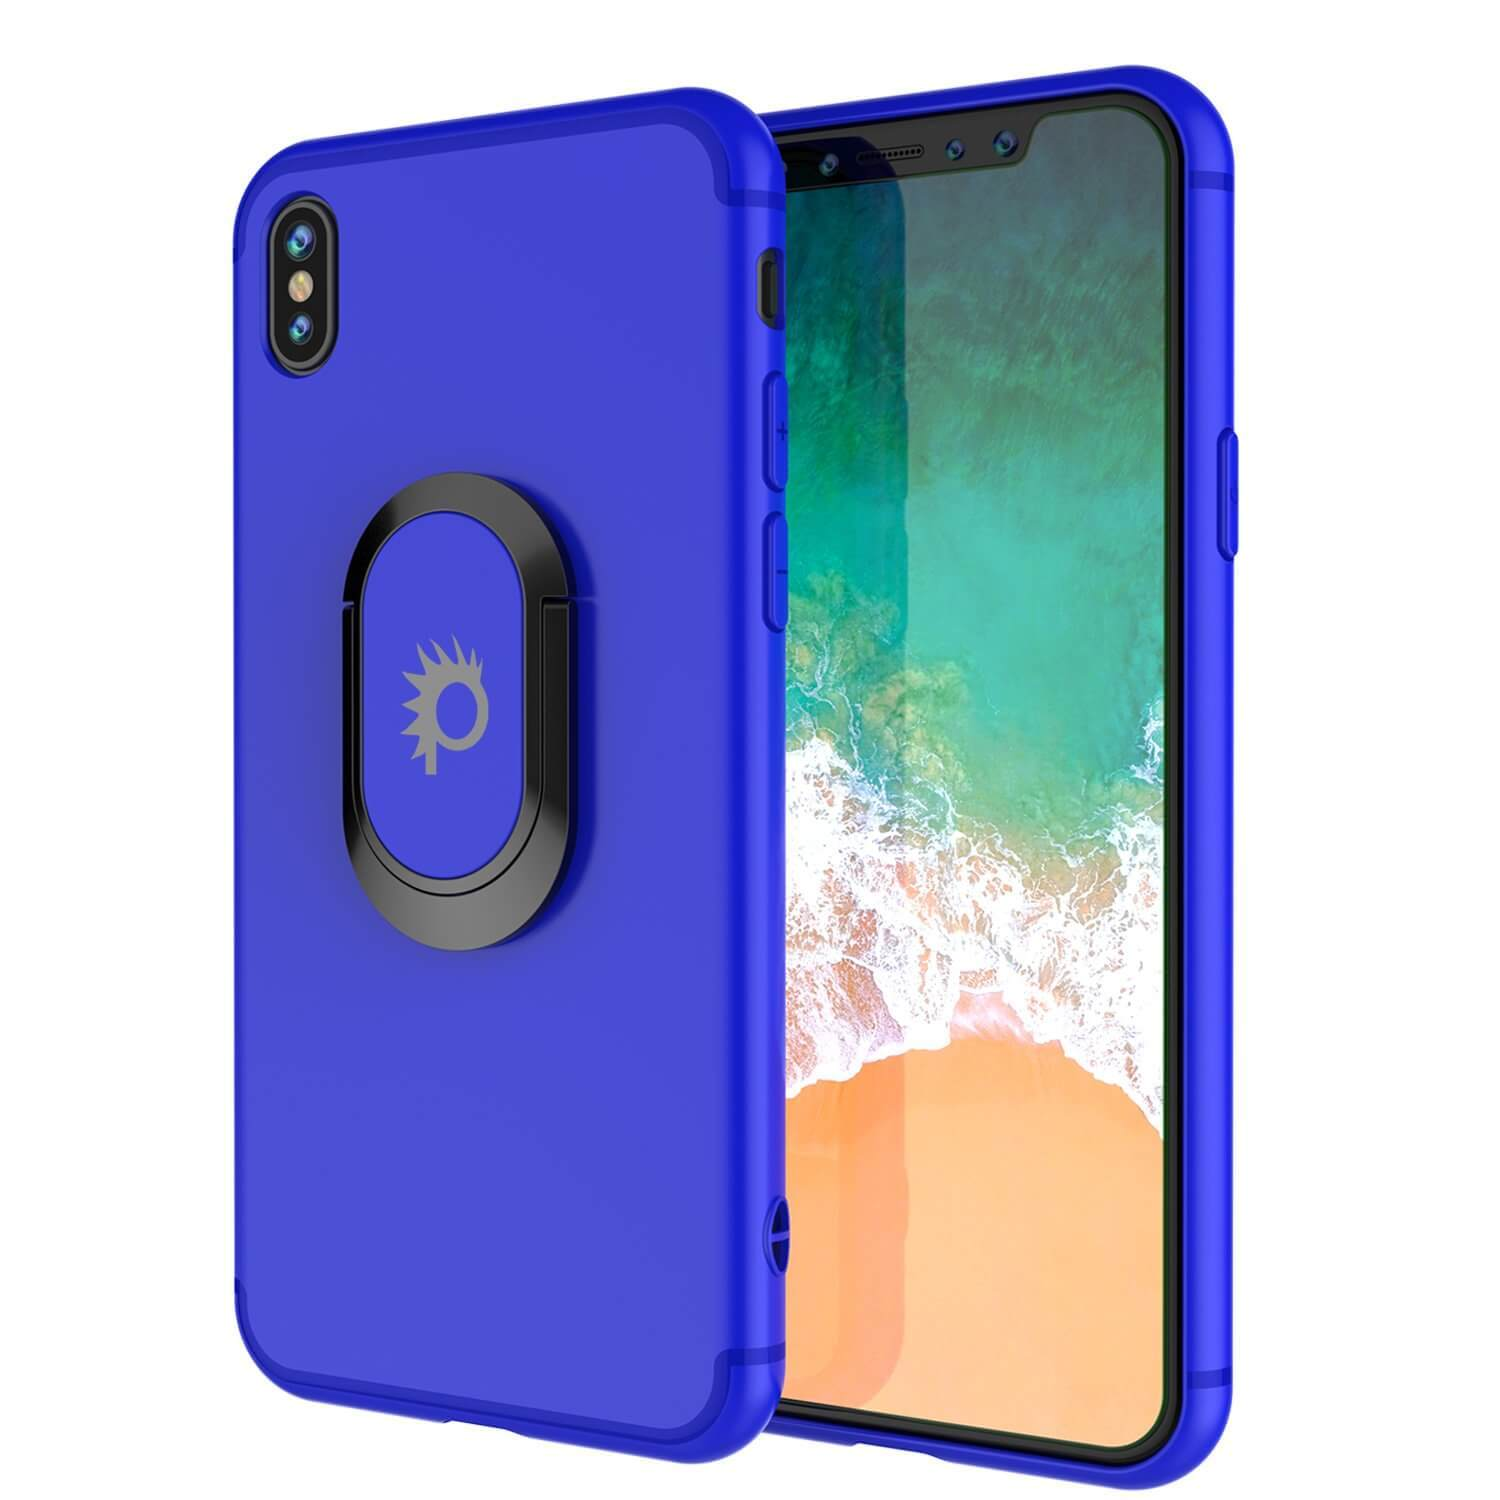 iPhone XS Max Case, Punkcase Magnetix Protective TPU Cover W/ Kickstand, Tempered Glass Screen Protector [Blue]